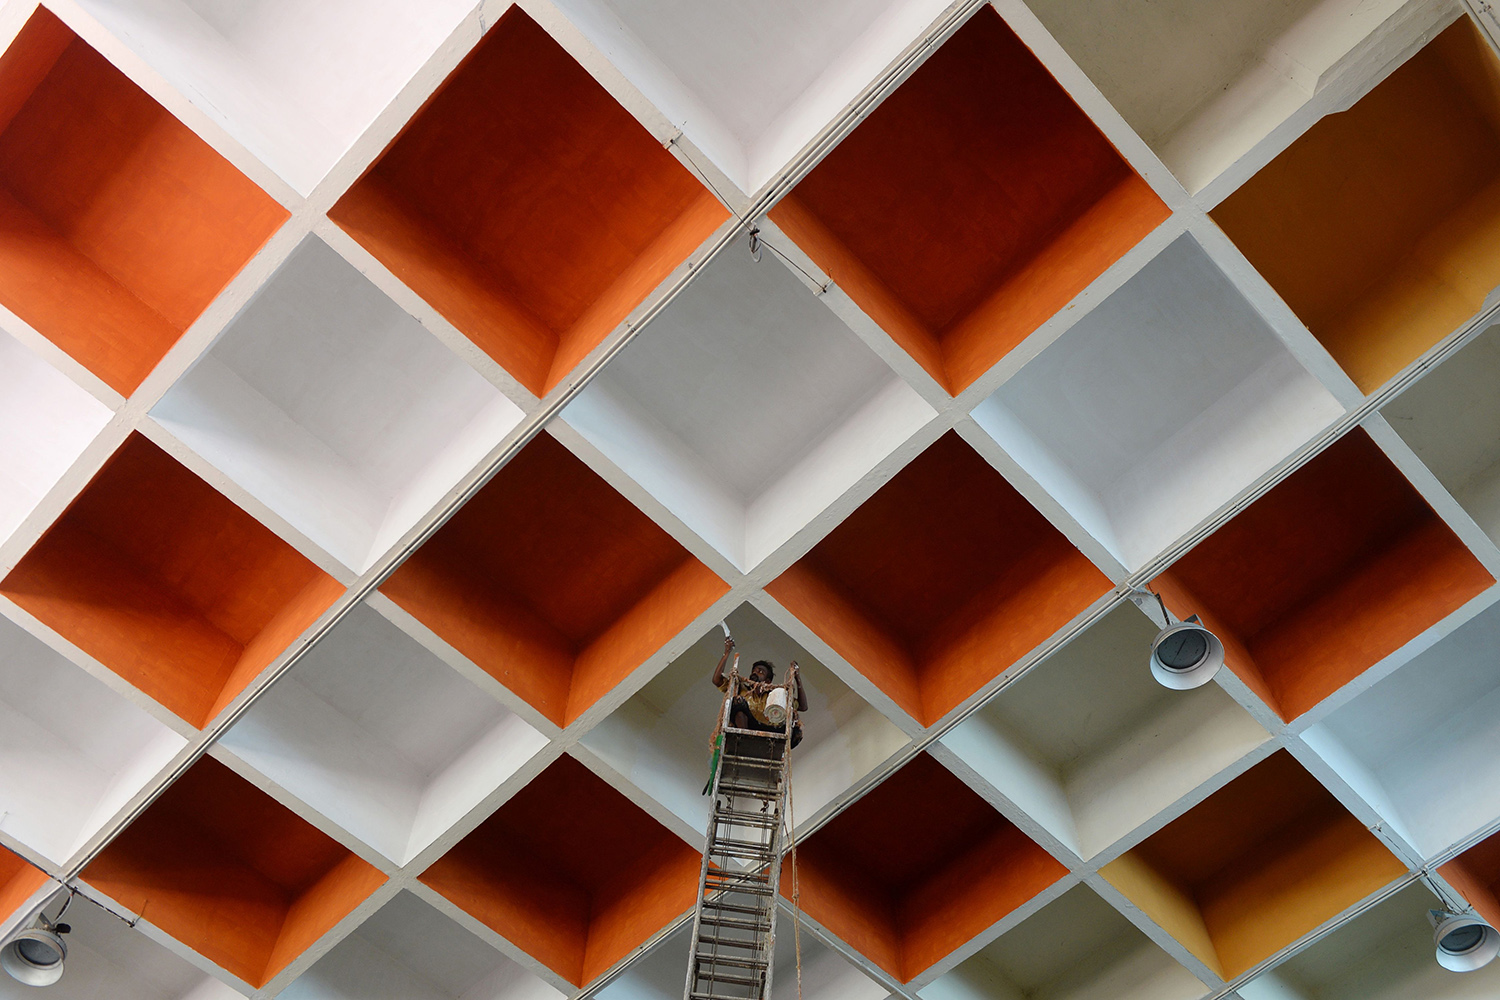 A worker paints the ceiling of a railway station in Chennai, India, on June 18 after the government eased a nationwide lockdown. ARUN SANKAR/AFP via Getty Images